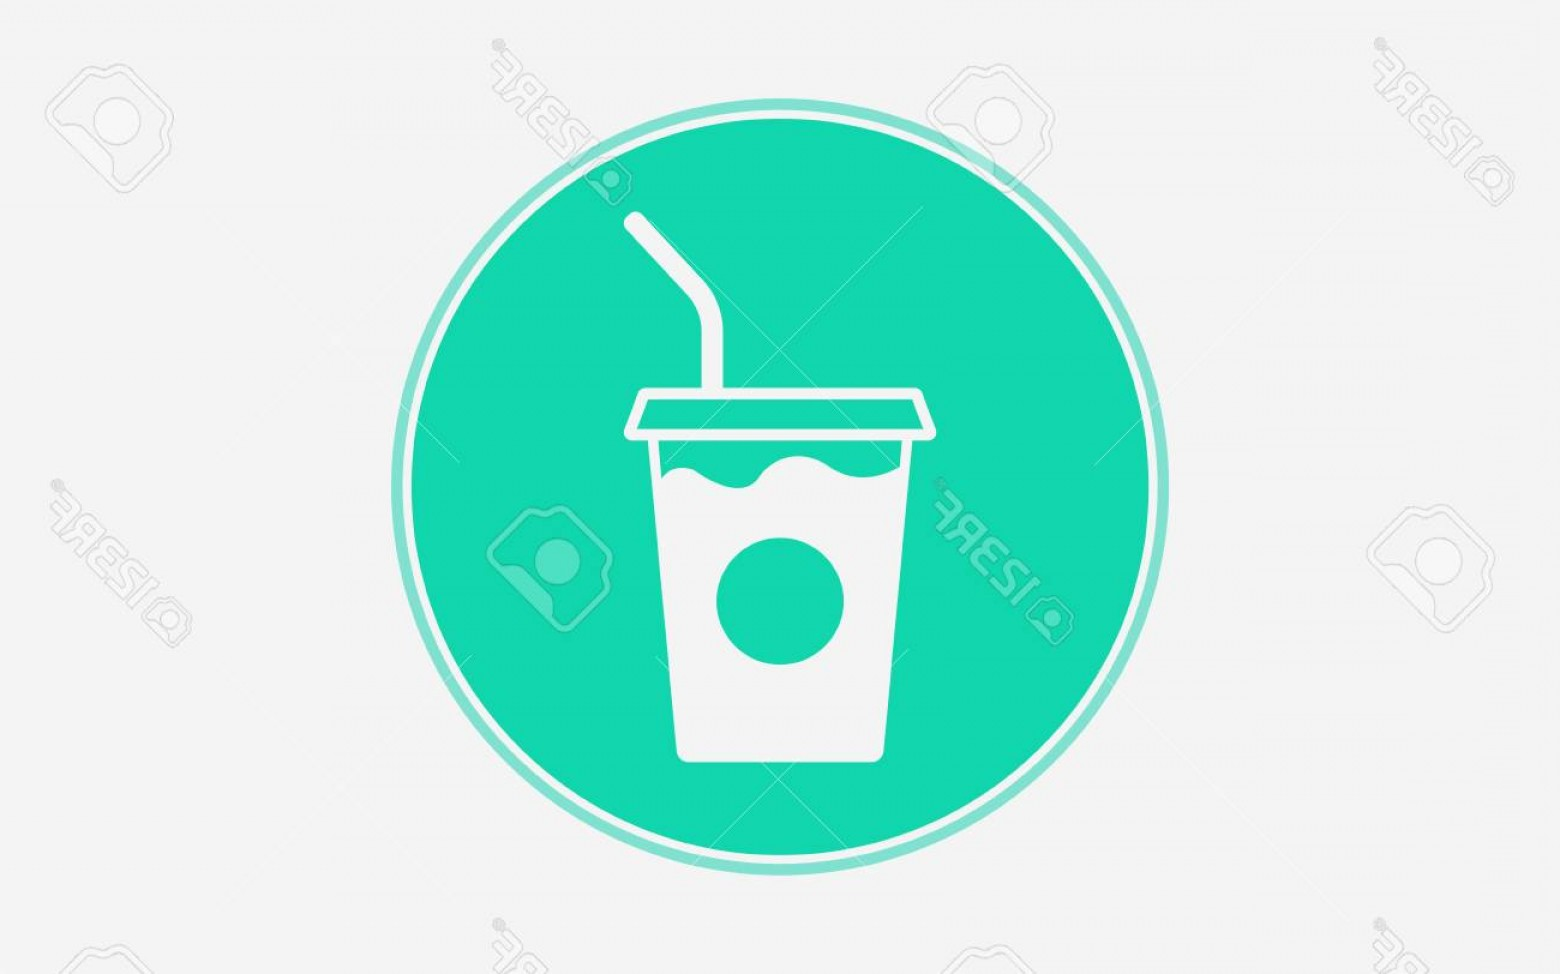 Snow Cone Outline Vector: Photostock Vector Smoothie Drink Cup Line Icon Outline Vector Sign Linear Style Pictogram Isolated On White Symbol Log